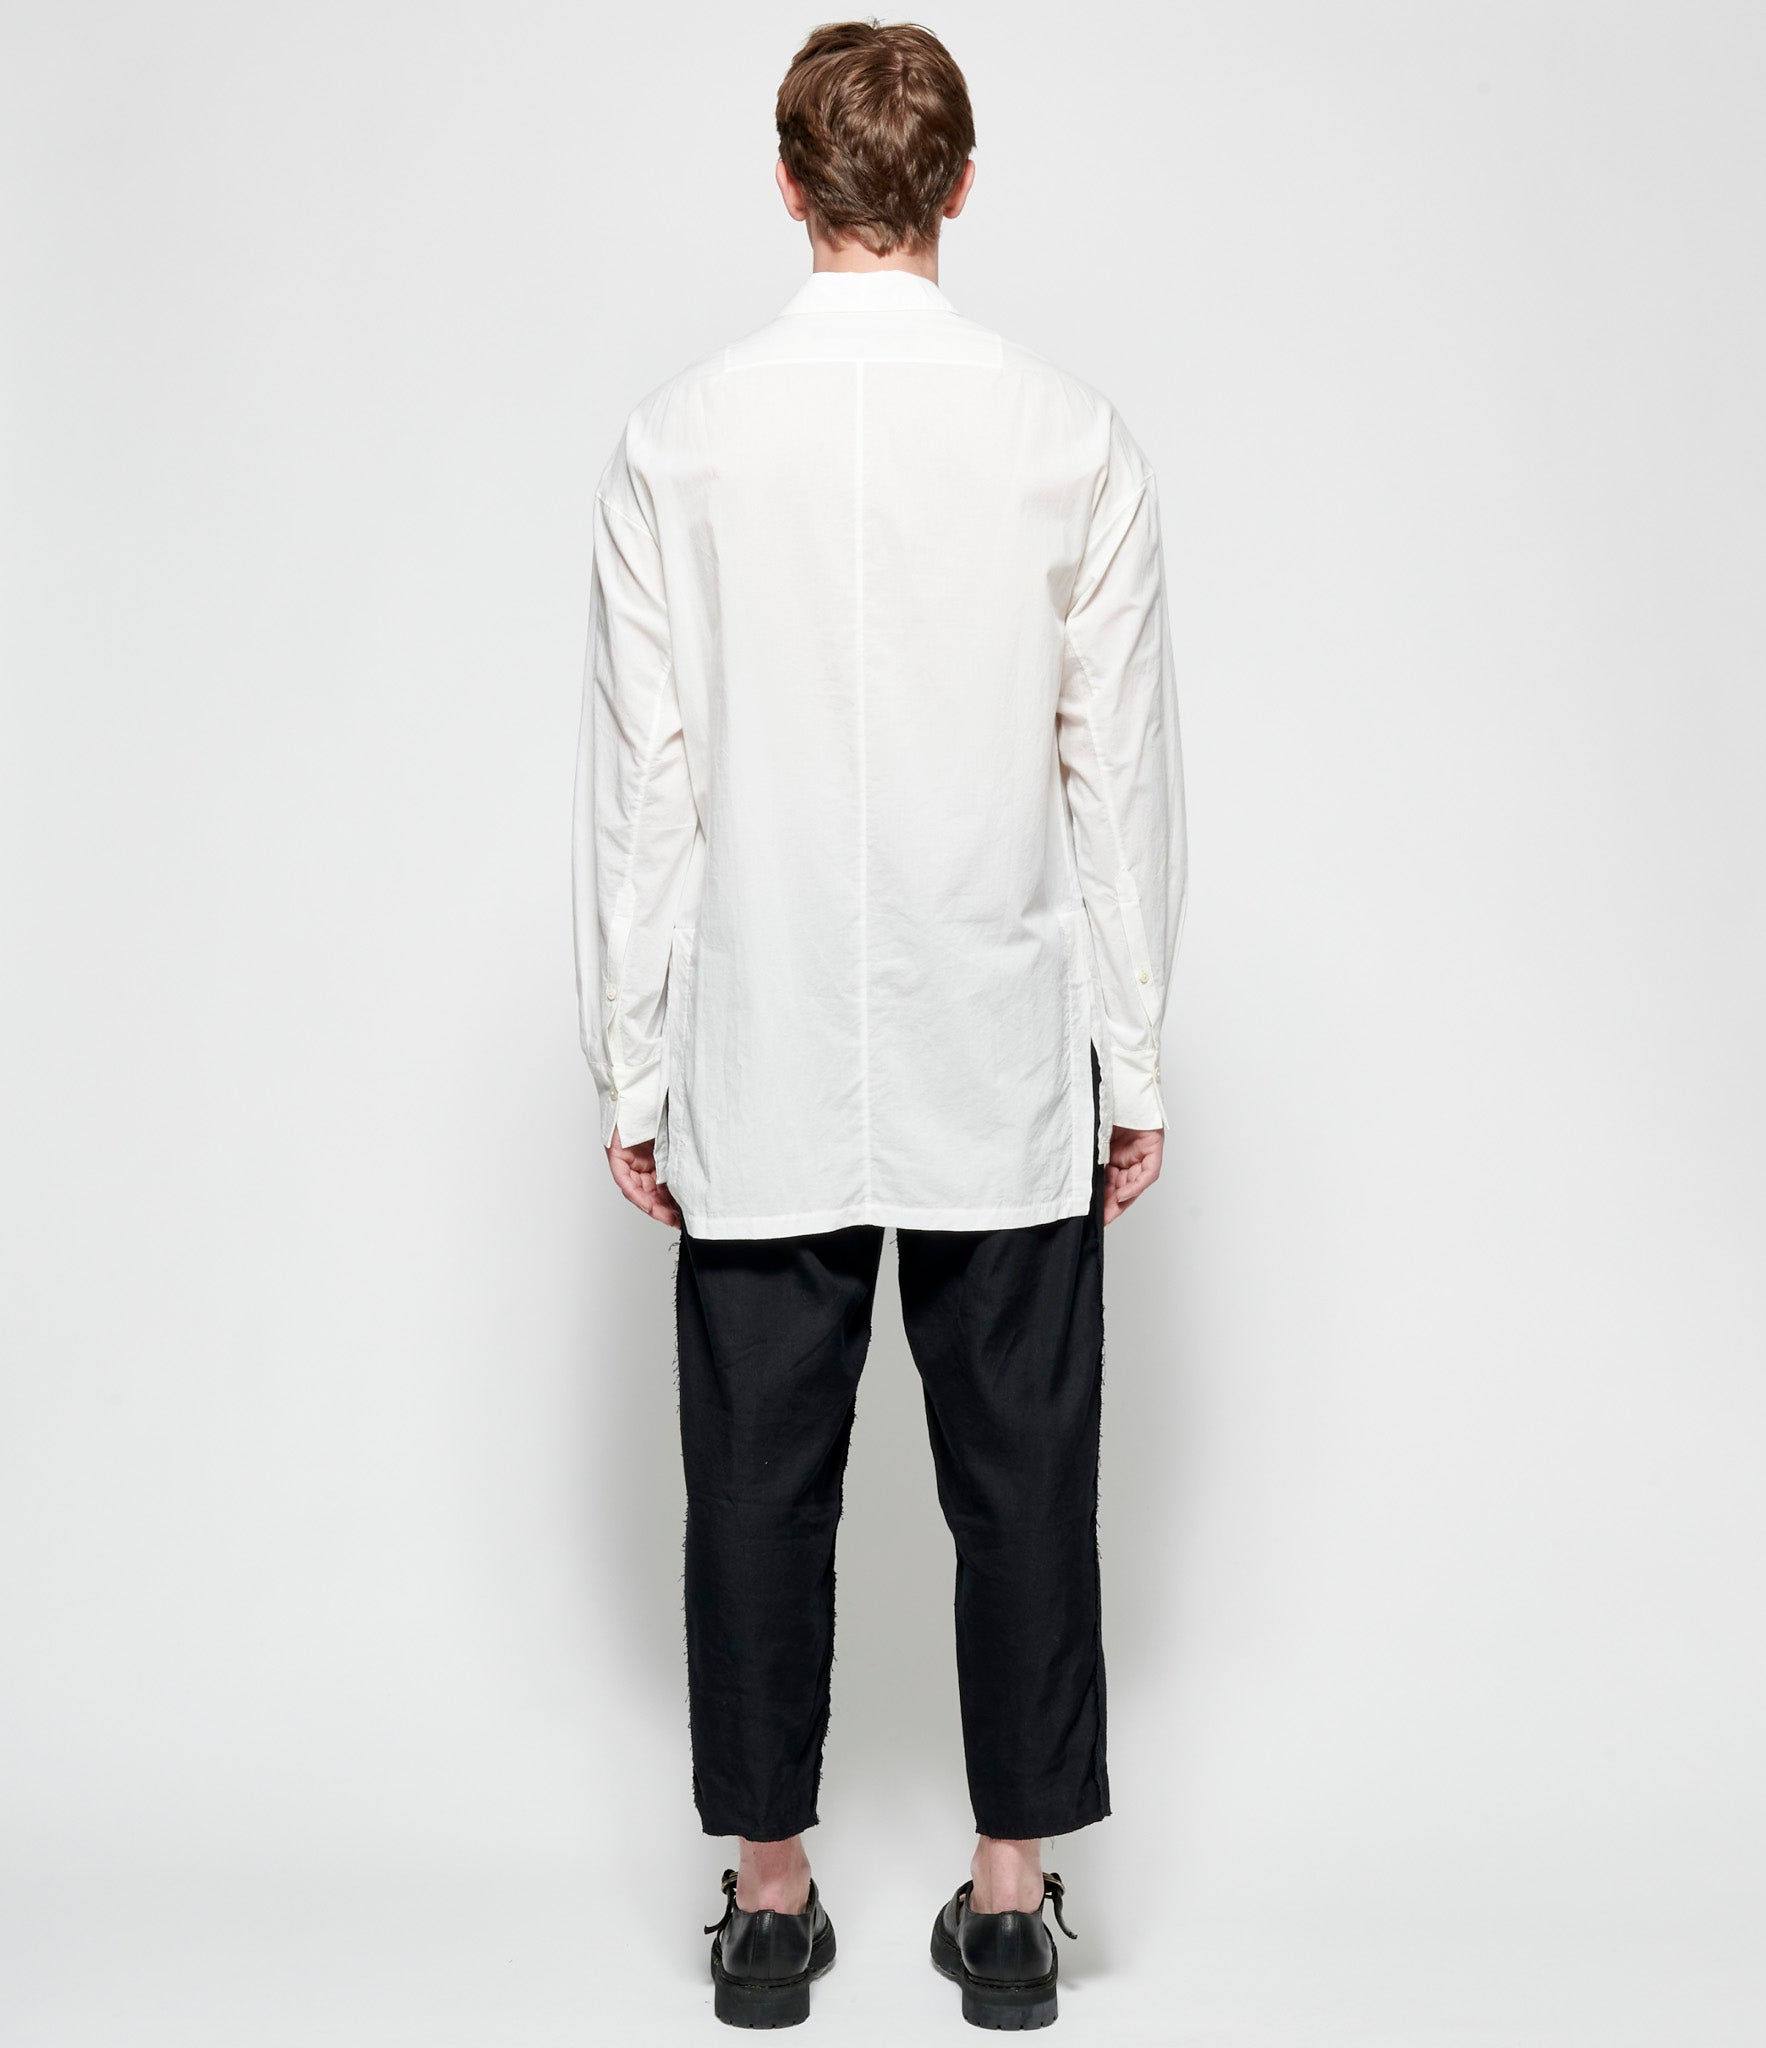 Ziggy Chen Pleated Appliqued White Cotton Shirt